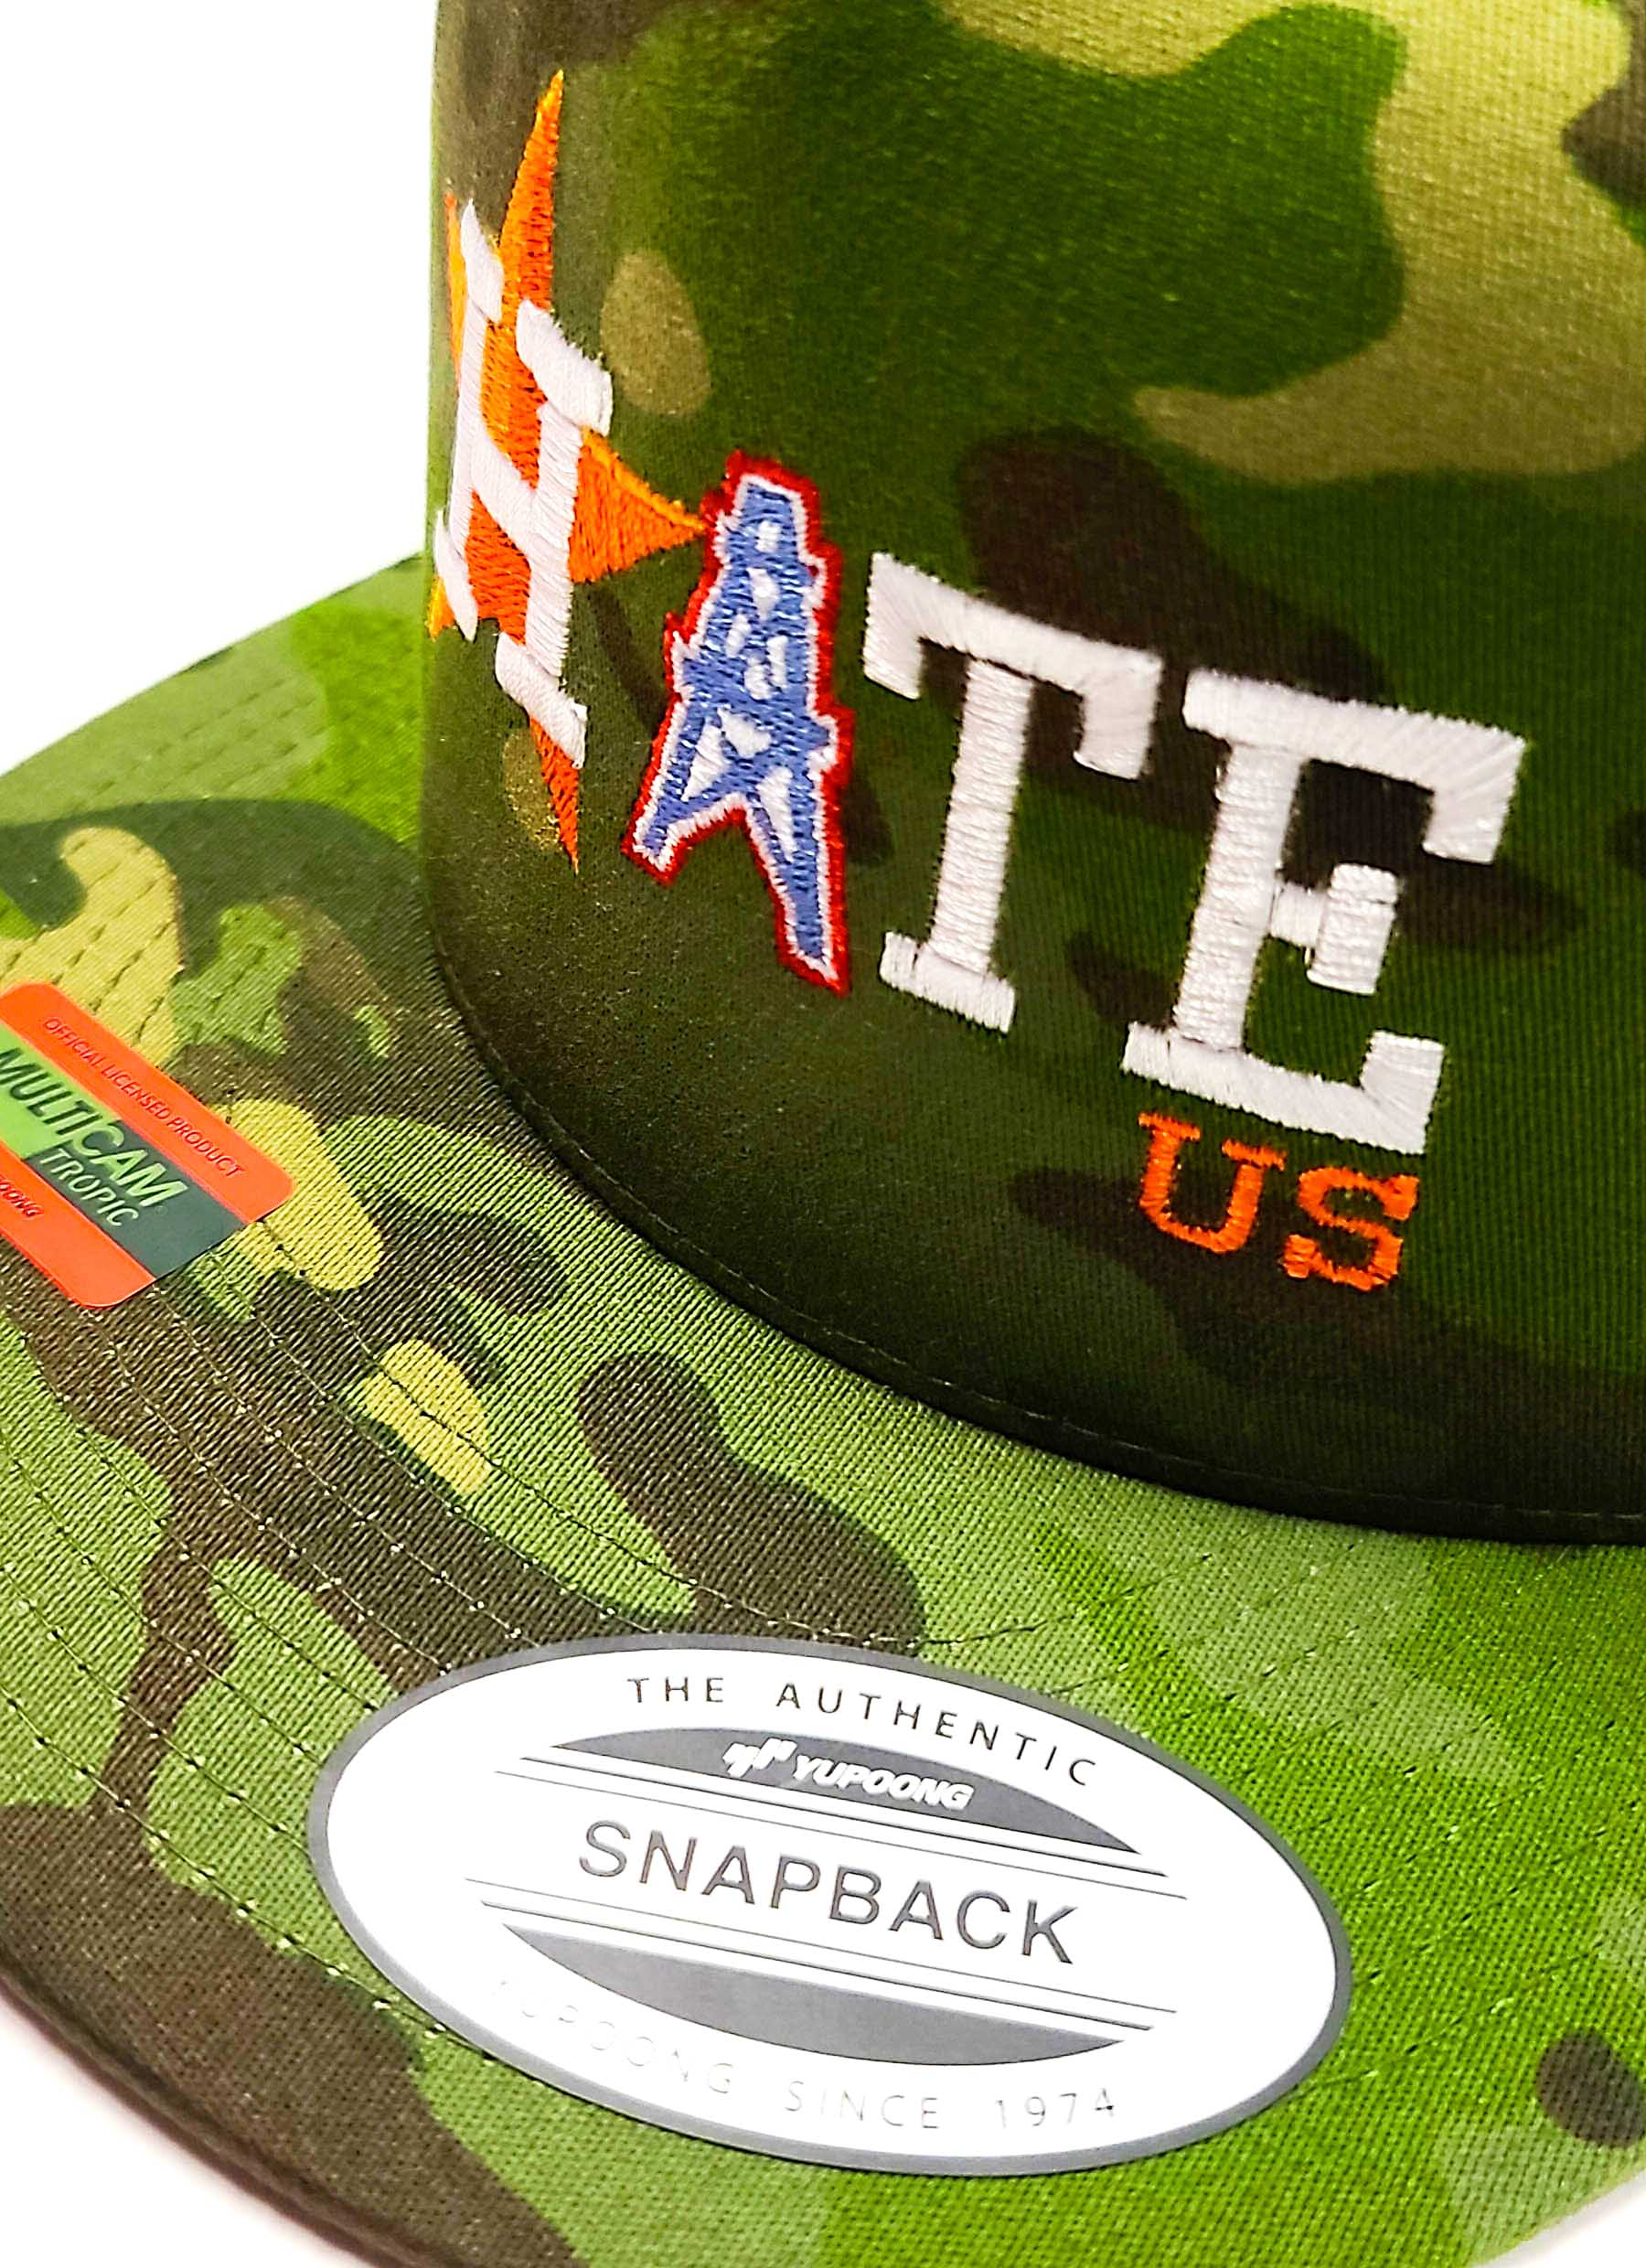 Houston Astros Hate Us Featuring Oilers Derrick on a 5 panel flat bill camo classic trucker cap logo view